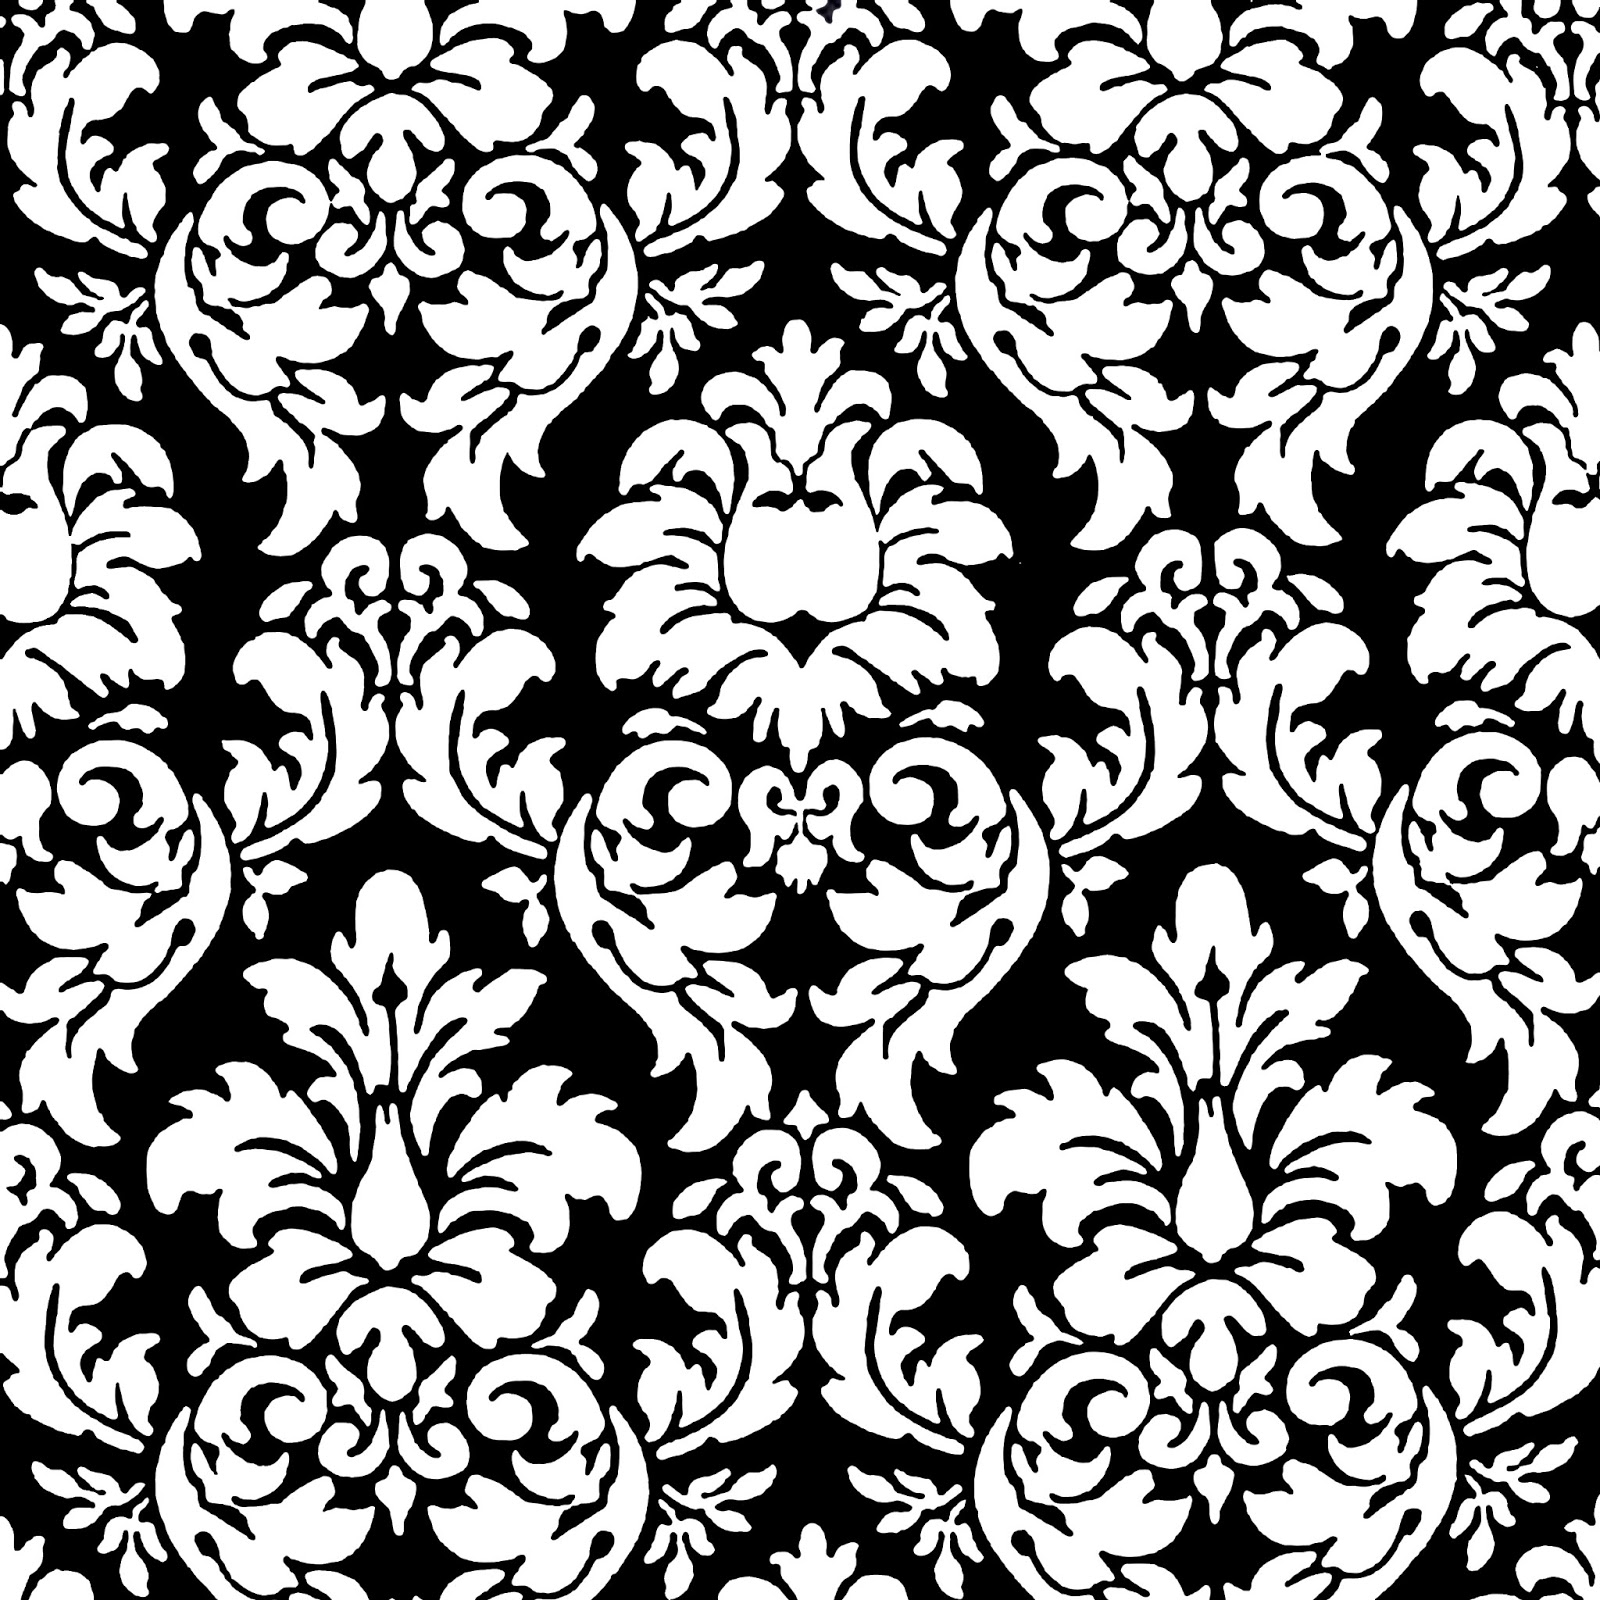 Black White Damask Wallpaper Mural Of Black On Black Damask Wallpaper